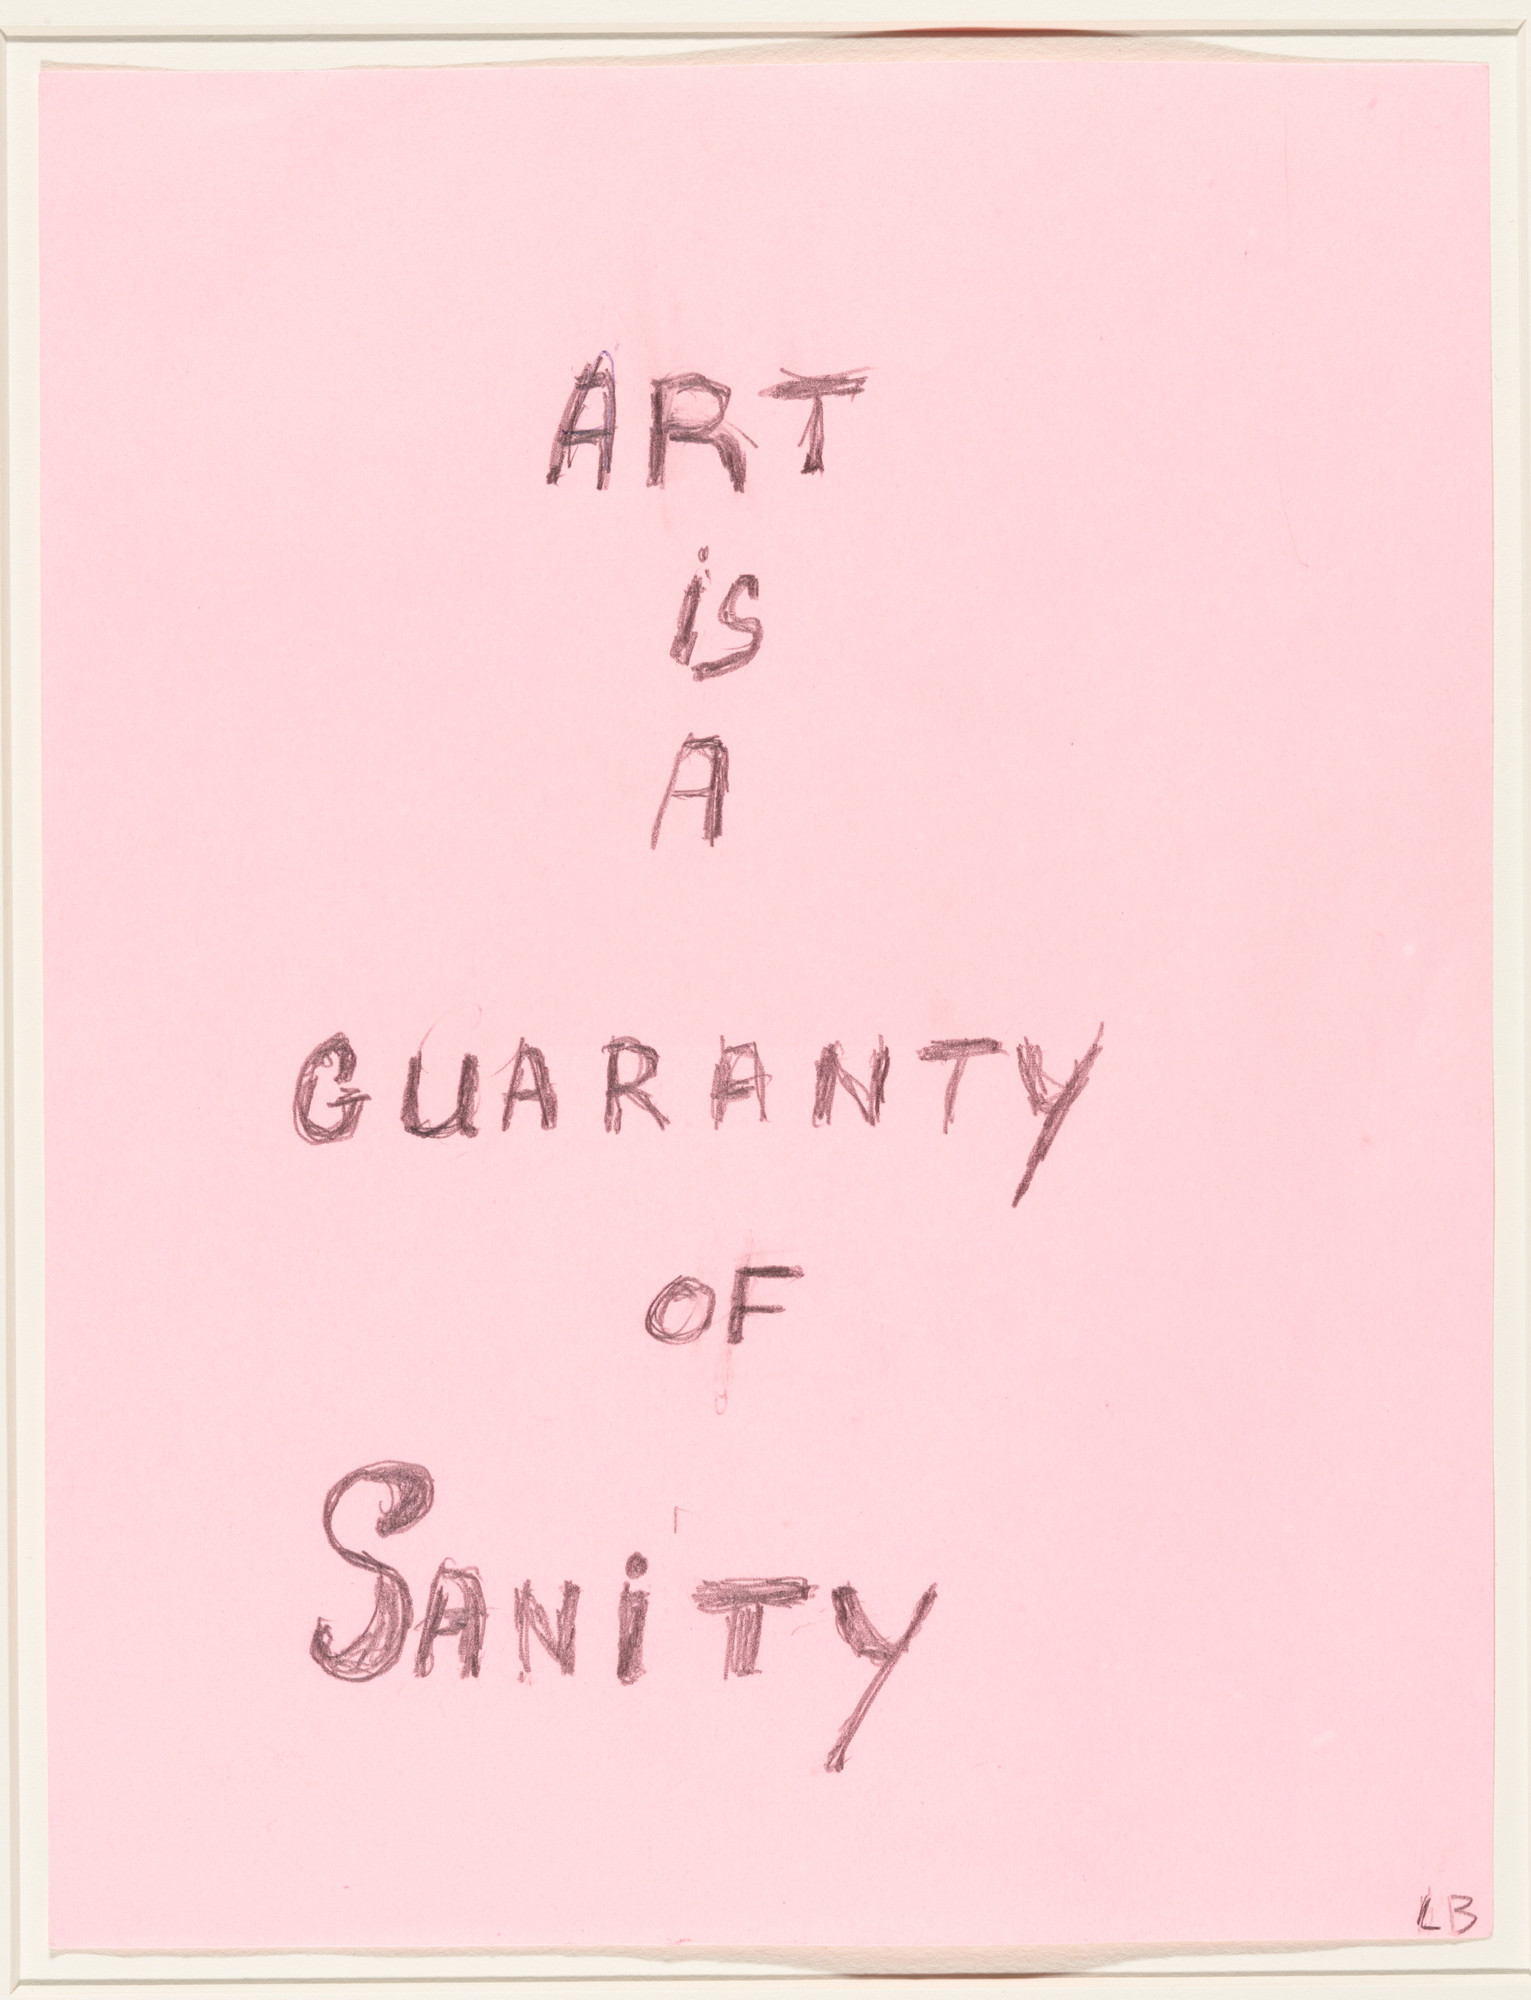 Louise Bourgeois. Art Is a Guaranty of Sanity. 2000